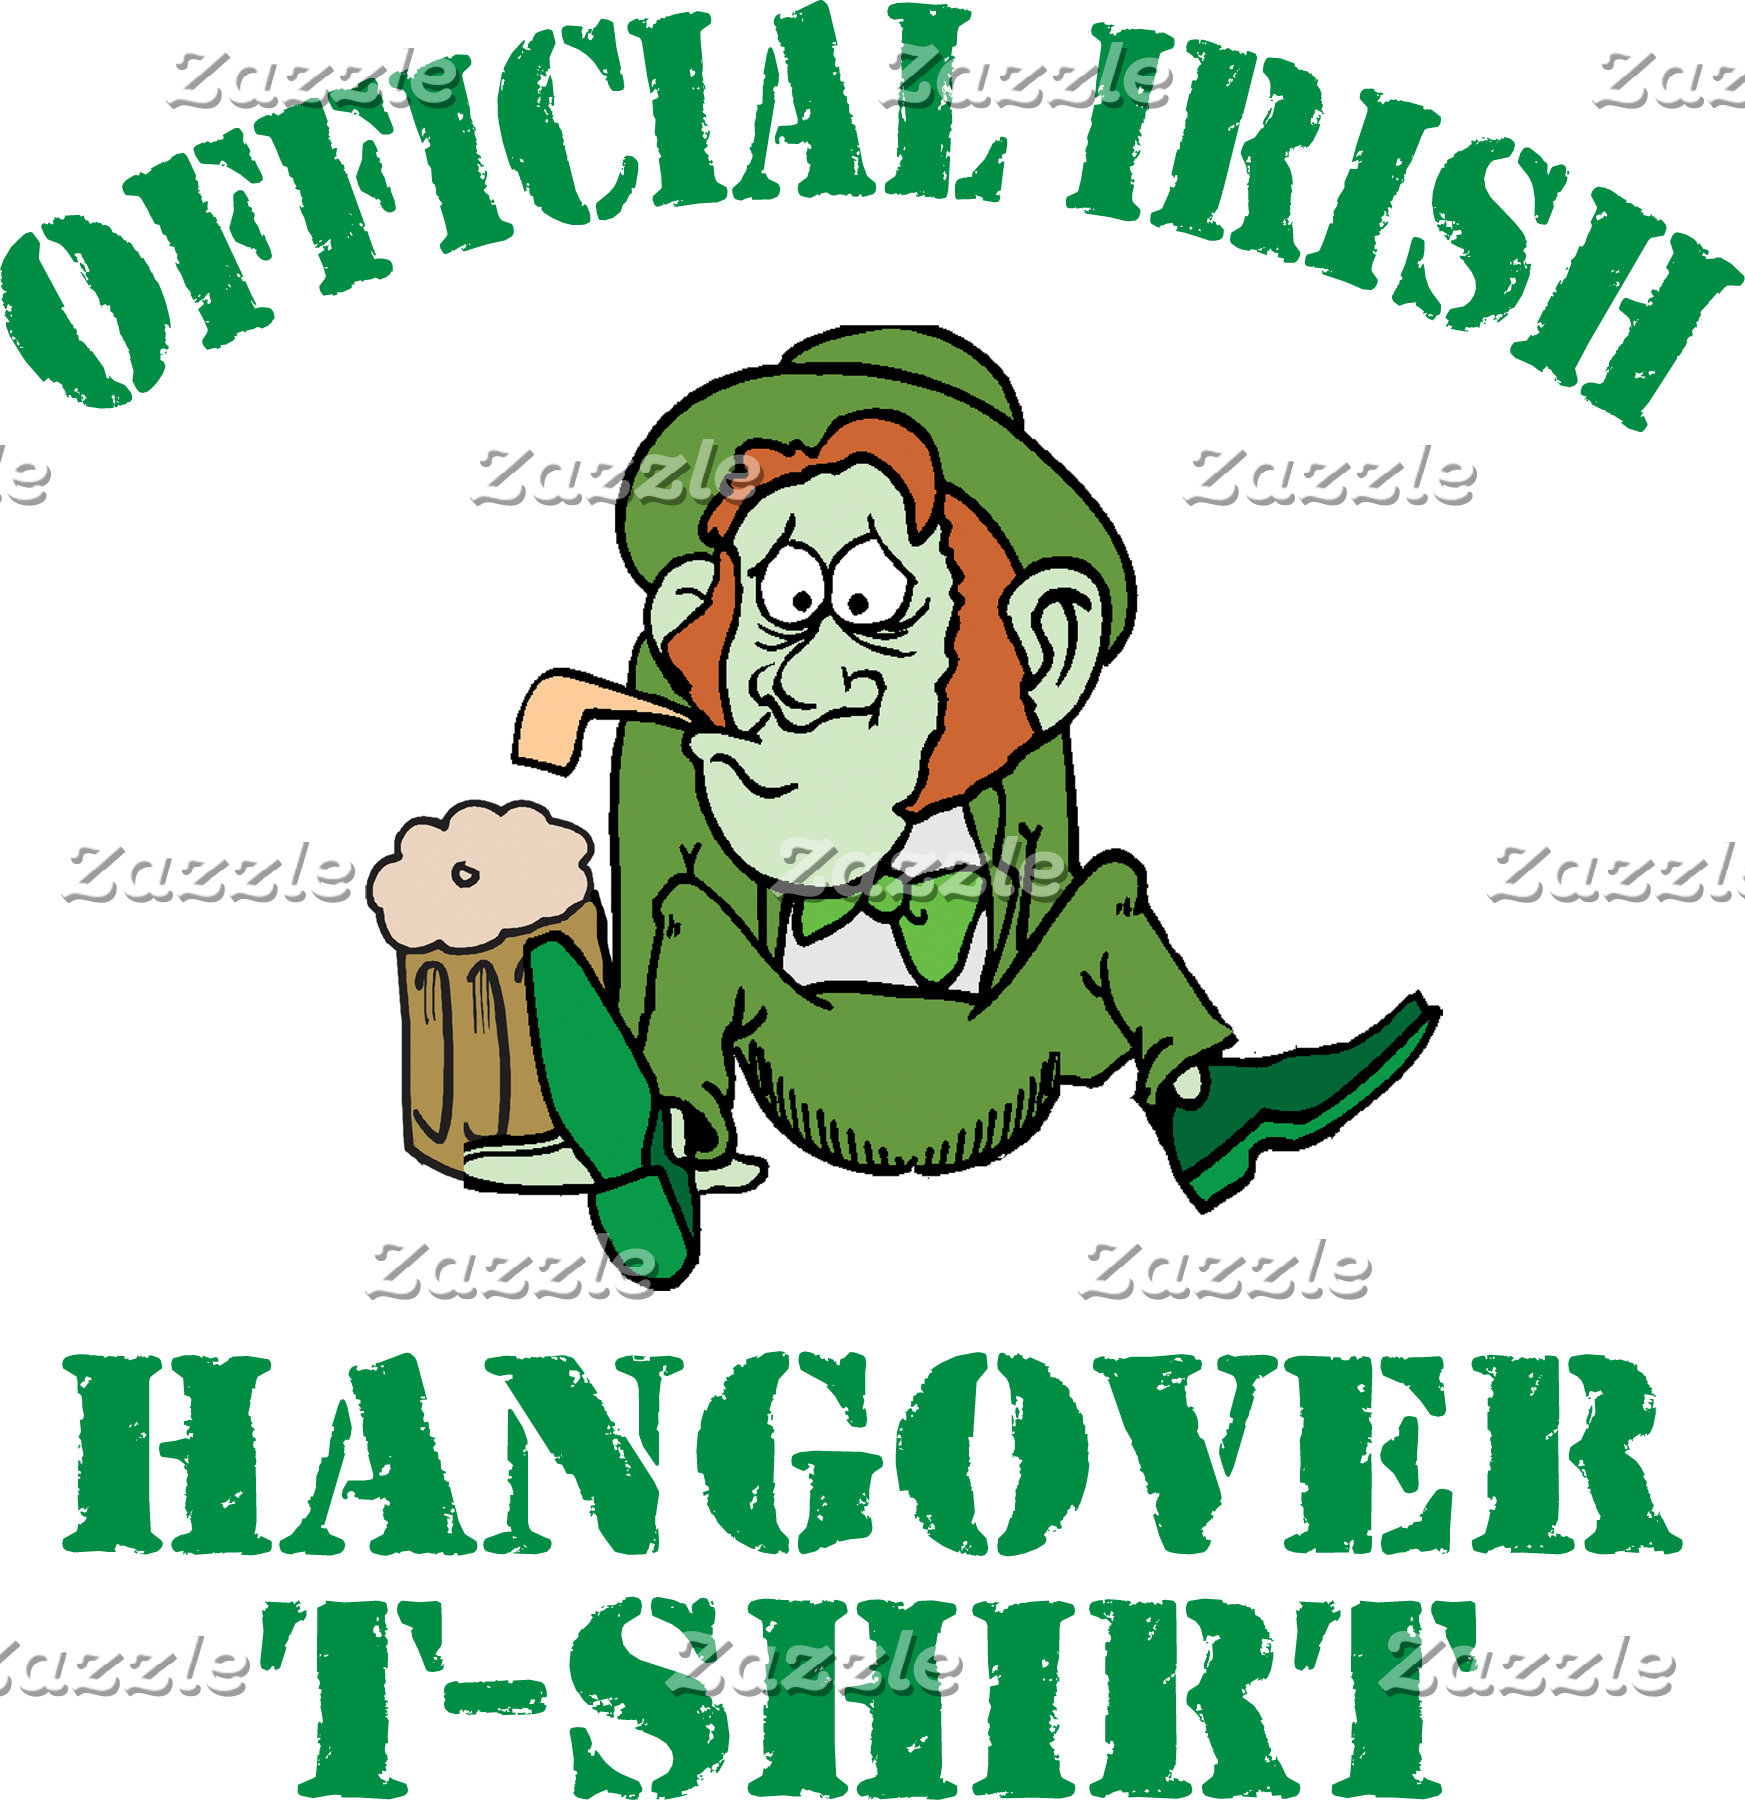 Irish Hangover T-Shirt